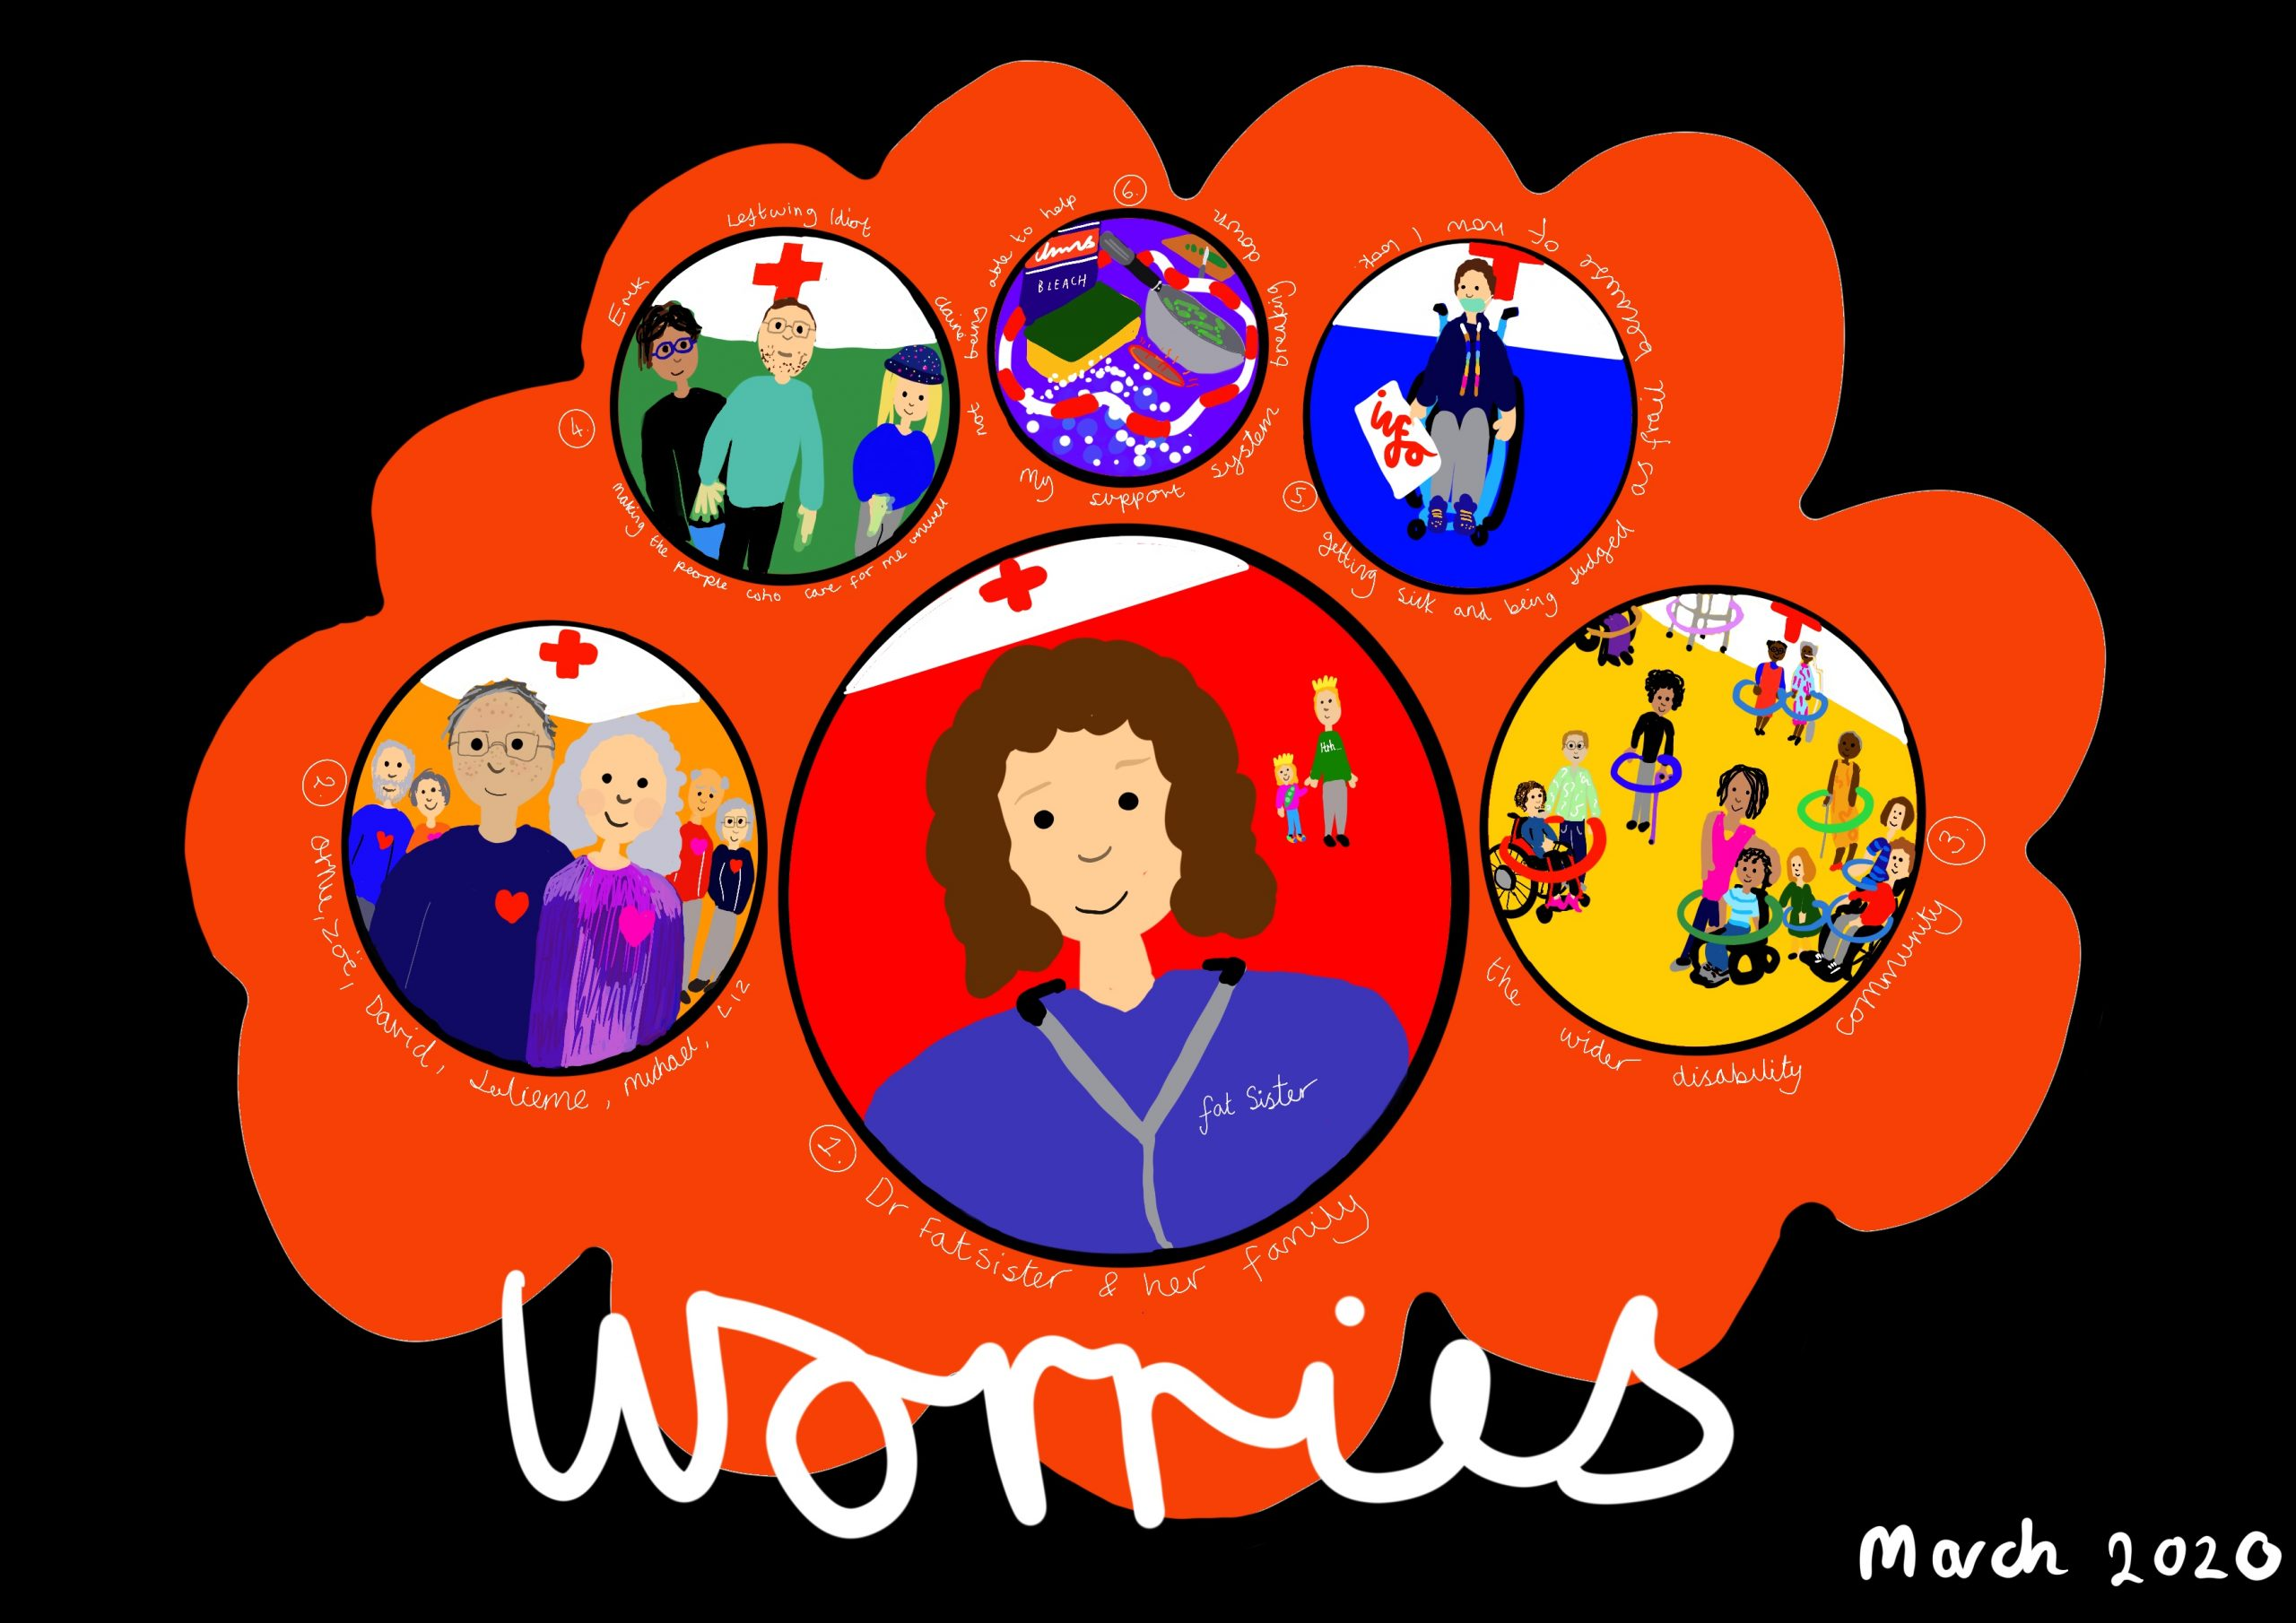 A digital drawing of a red cloud with a black background with 6 circles containing drawings of people in each circle. The word 'worries' is at the bottom of the image in white text. The circles within the red cloud contain Fat Sister, Touretteshero's wider friends and family, Touretteshero's support crew, the wider disability community, Tourettshero getting sick, and Support system items such as bleach and frying pans.